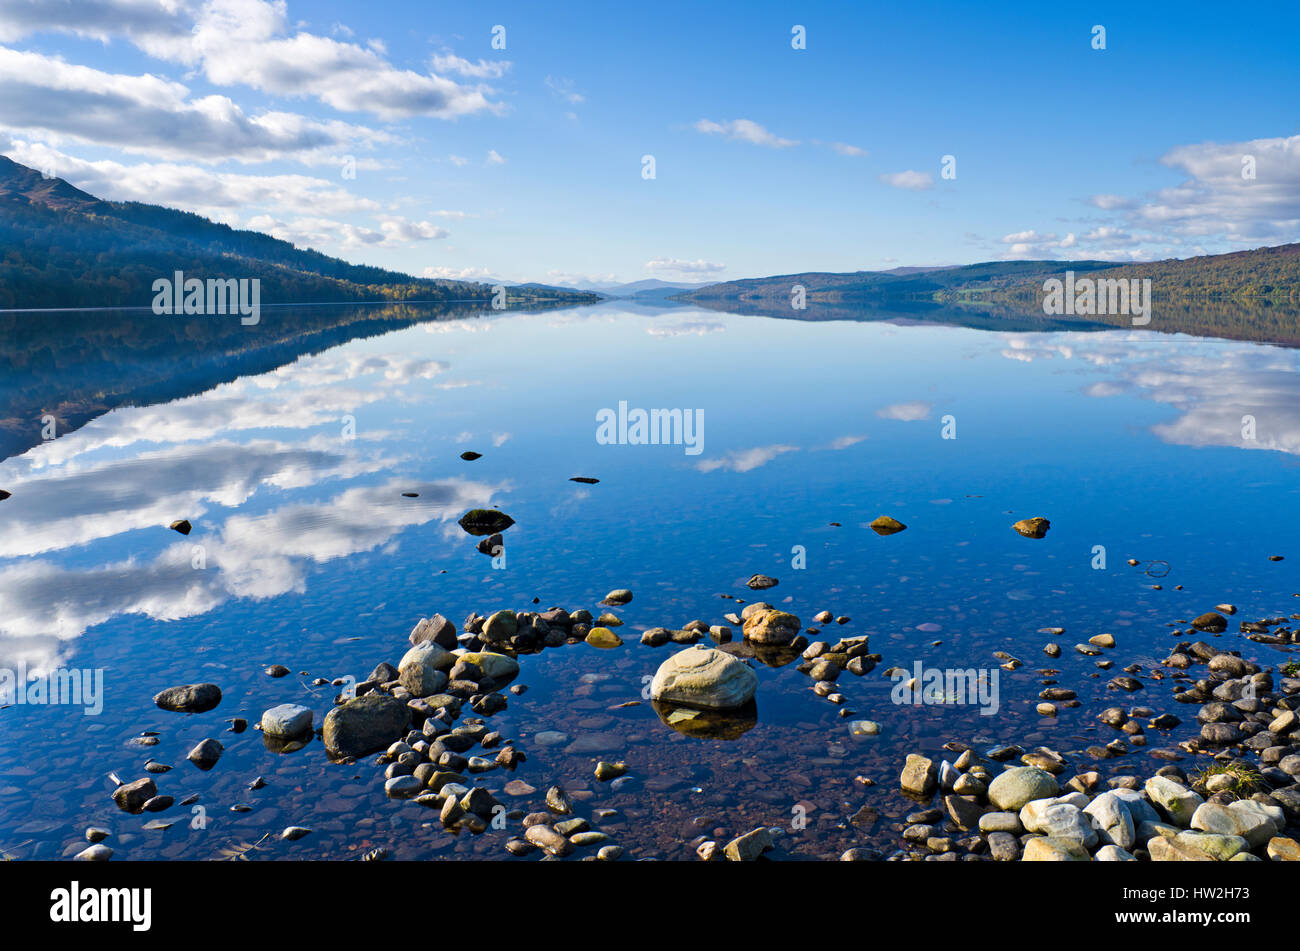 A view along the length of Loch Rannoch, Perthshire, Scottish Highlands, from the shore near near Kinloch Rannoch, - Stock Image